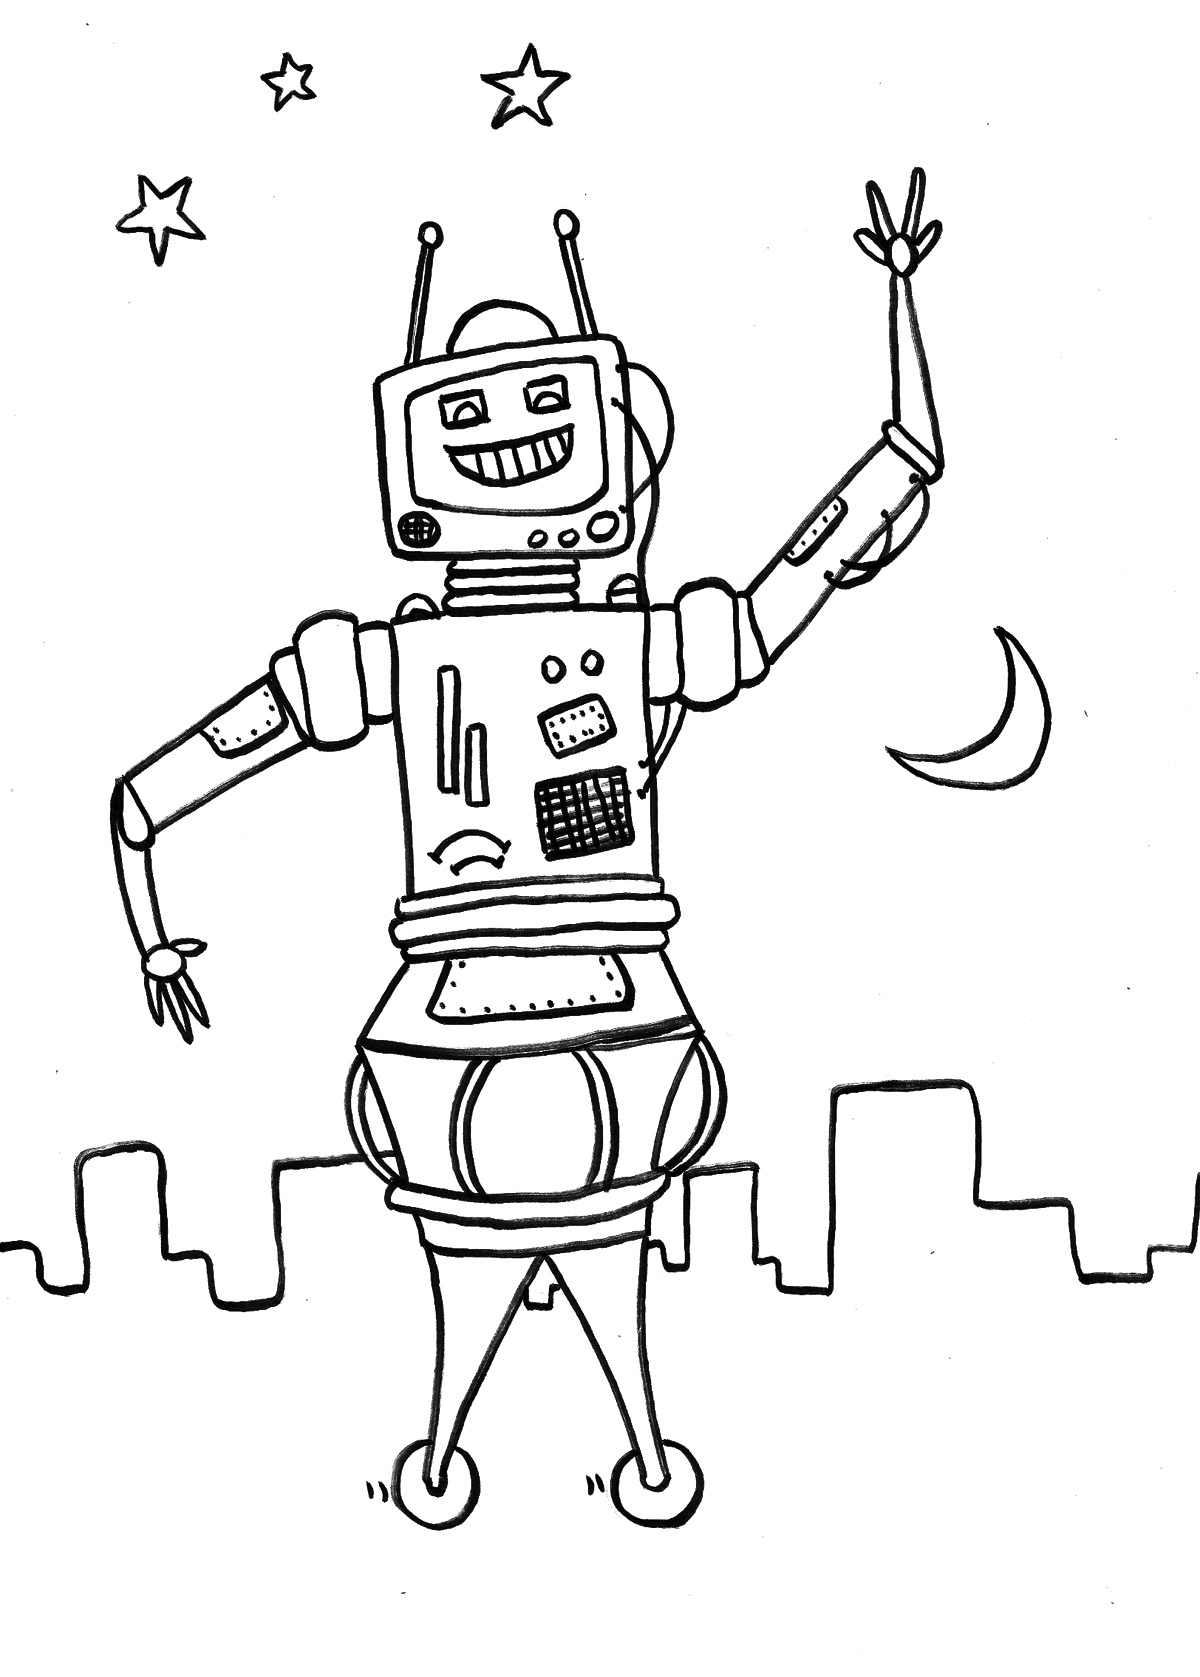 coloring sheet robot coloring pages from future robots coloring pages and robot craft ideas coloring pages coloring robot sheet